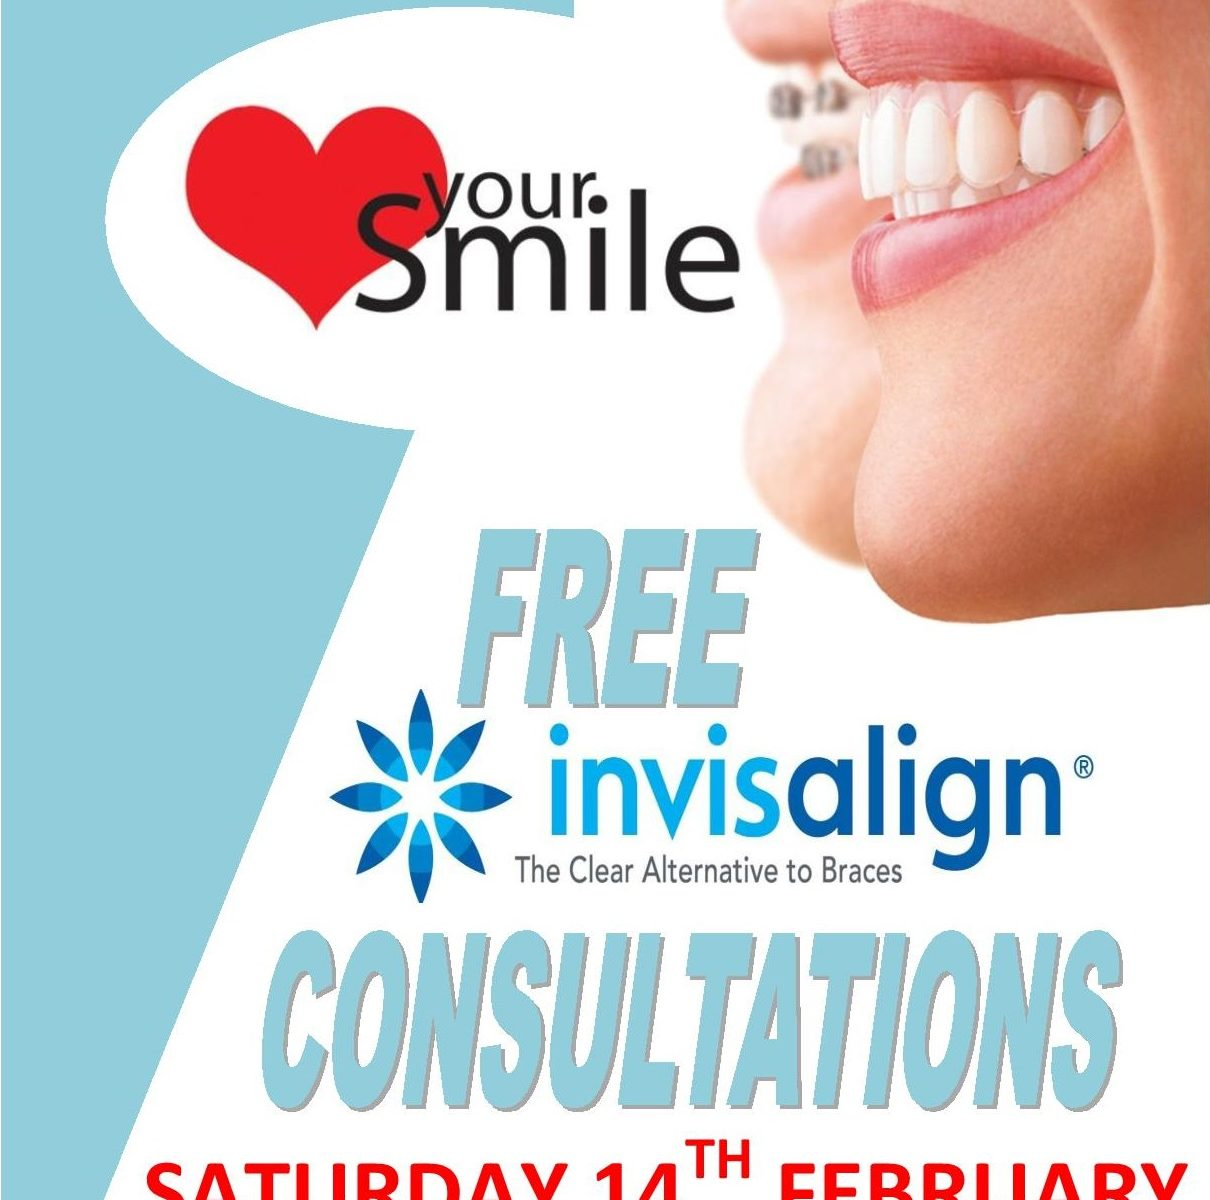 Invisalign Open Day Saturday 14th February